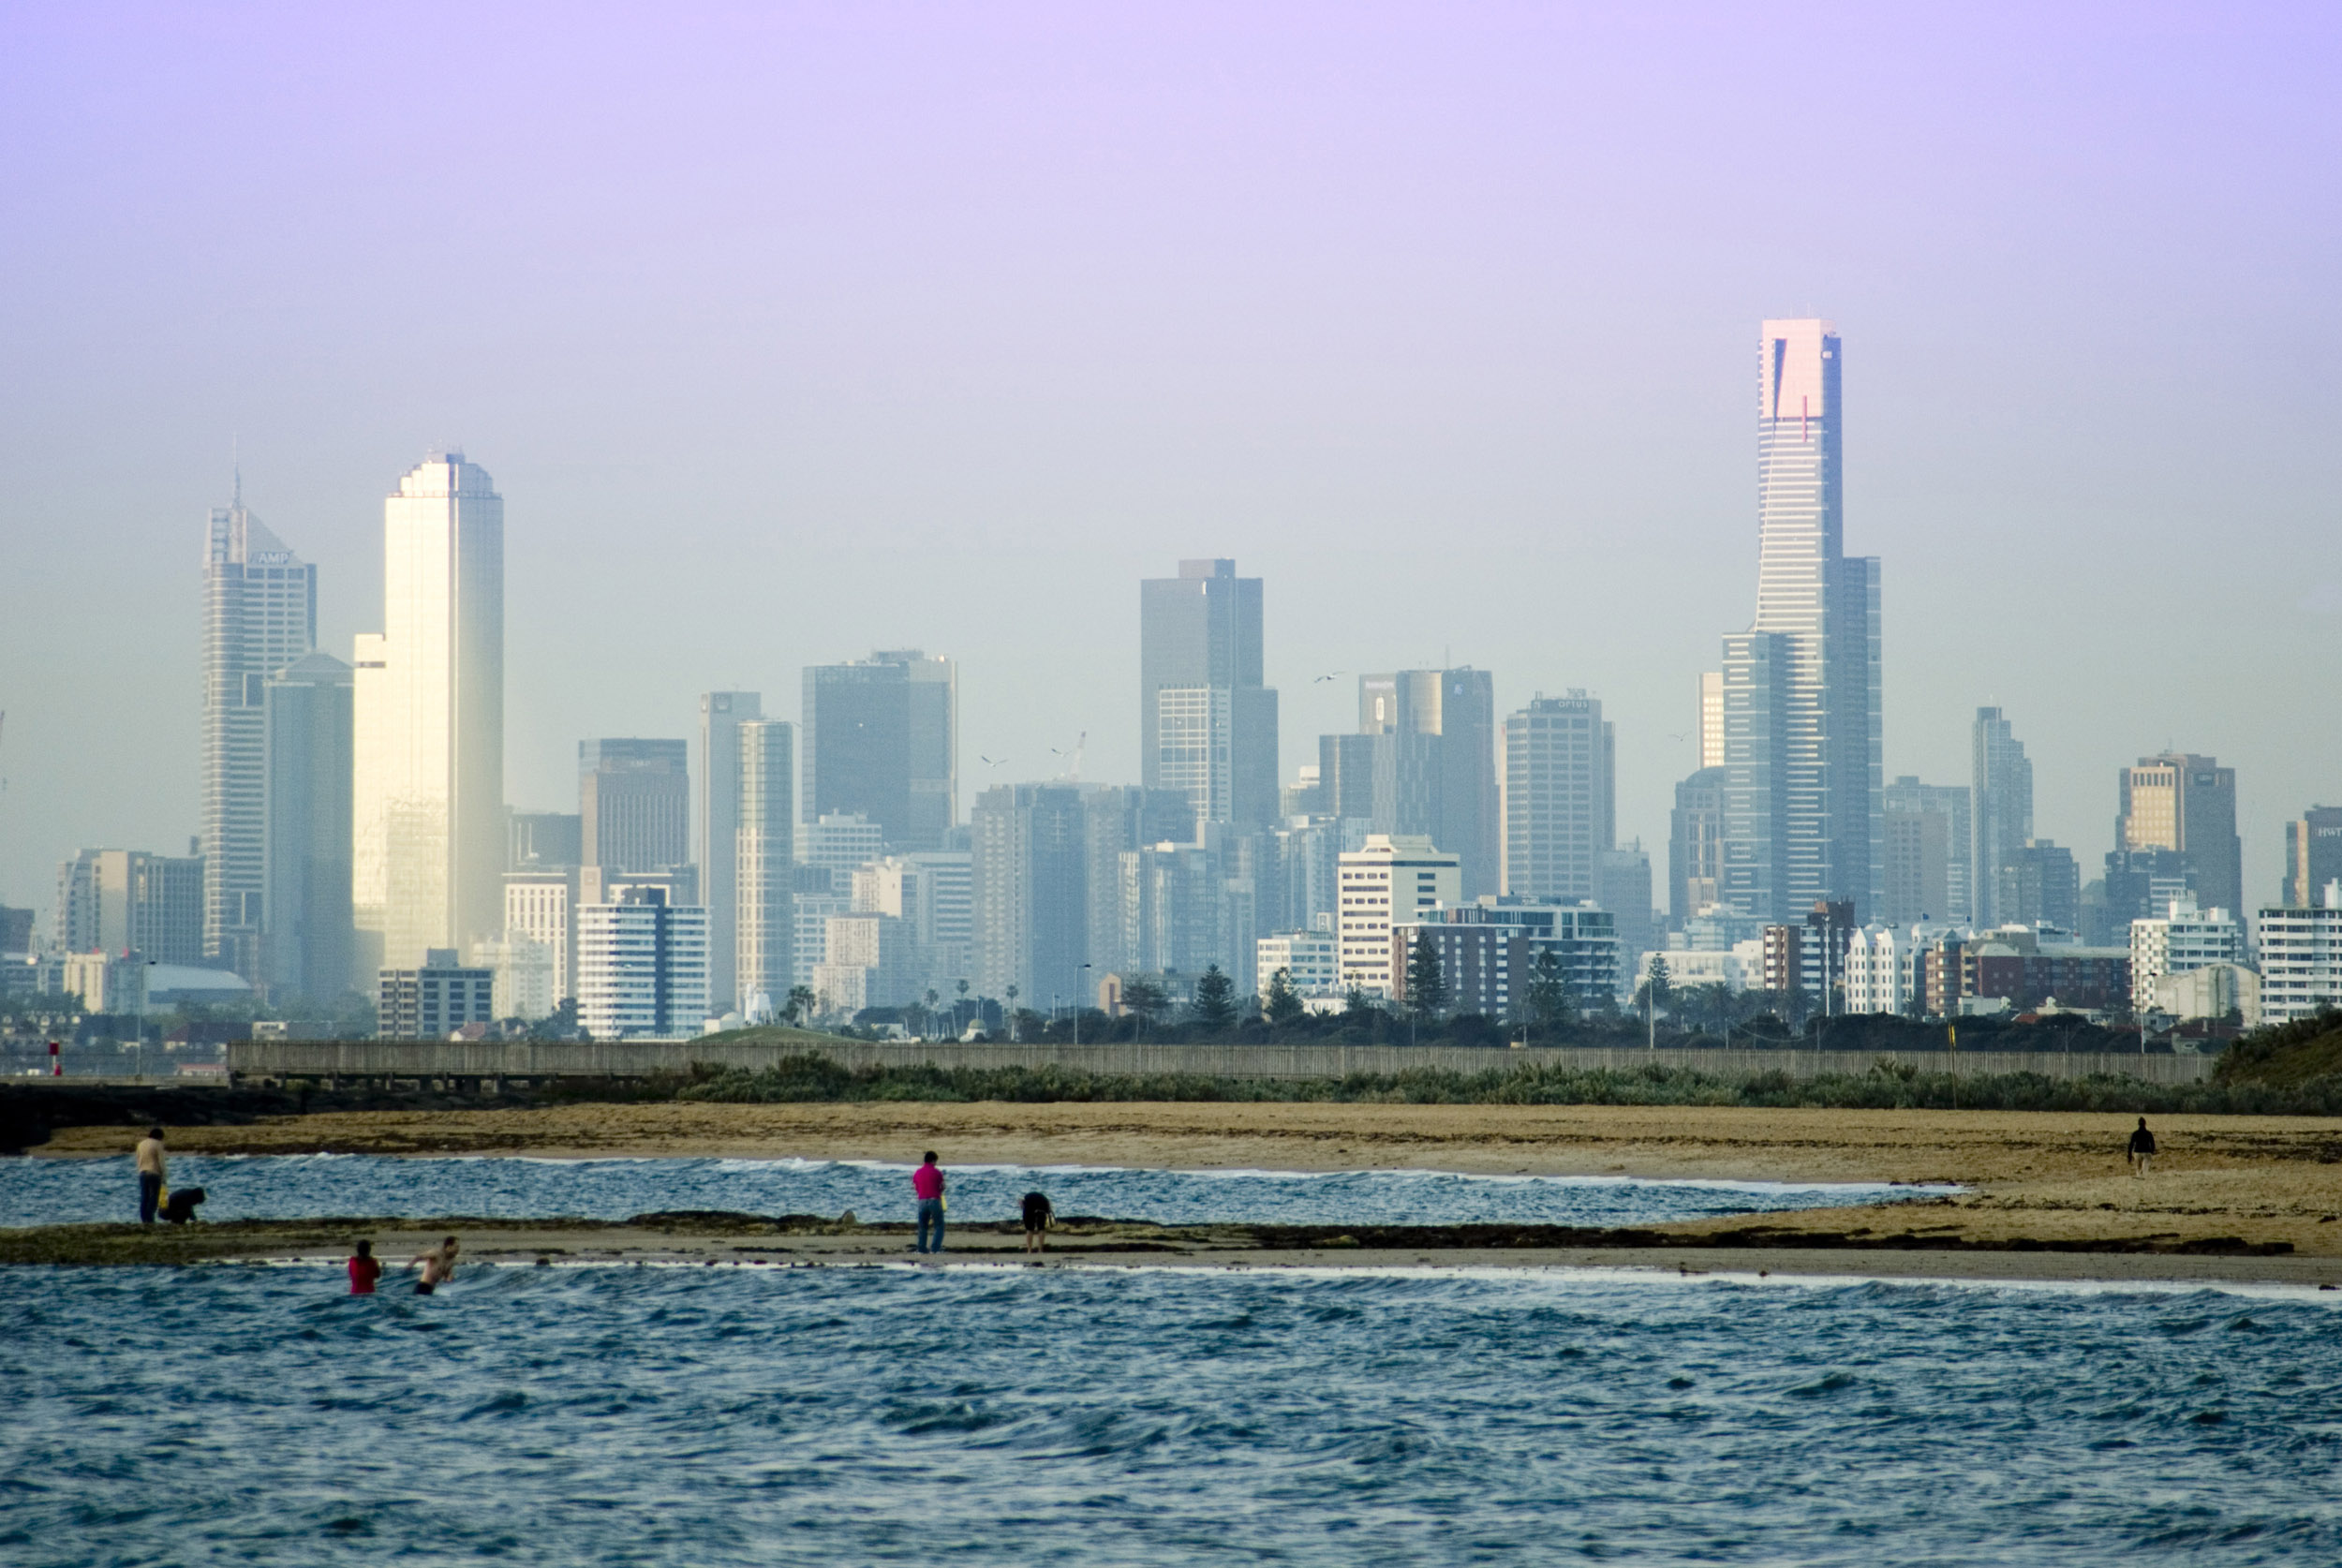 The distant Melbourne city skyline and CBD buildings from a beautiful, quiet suburban ocean beach.